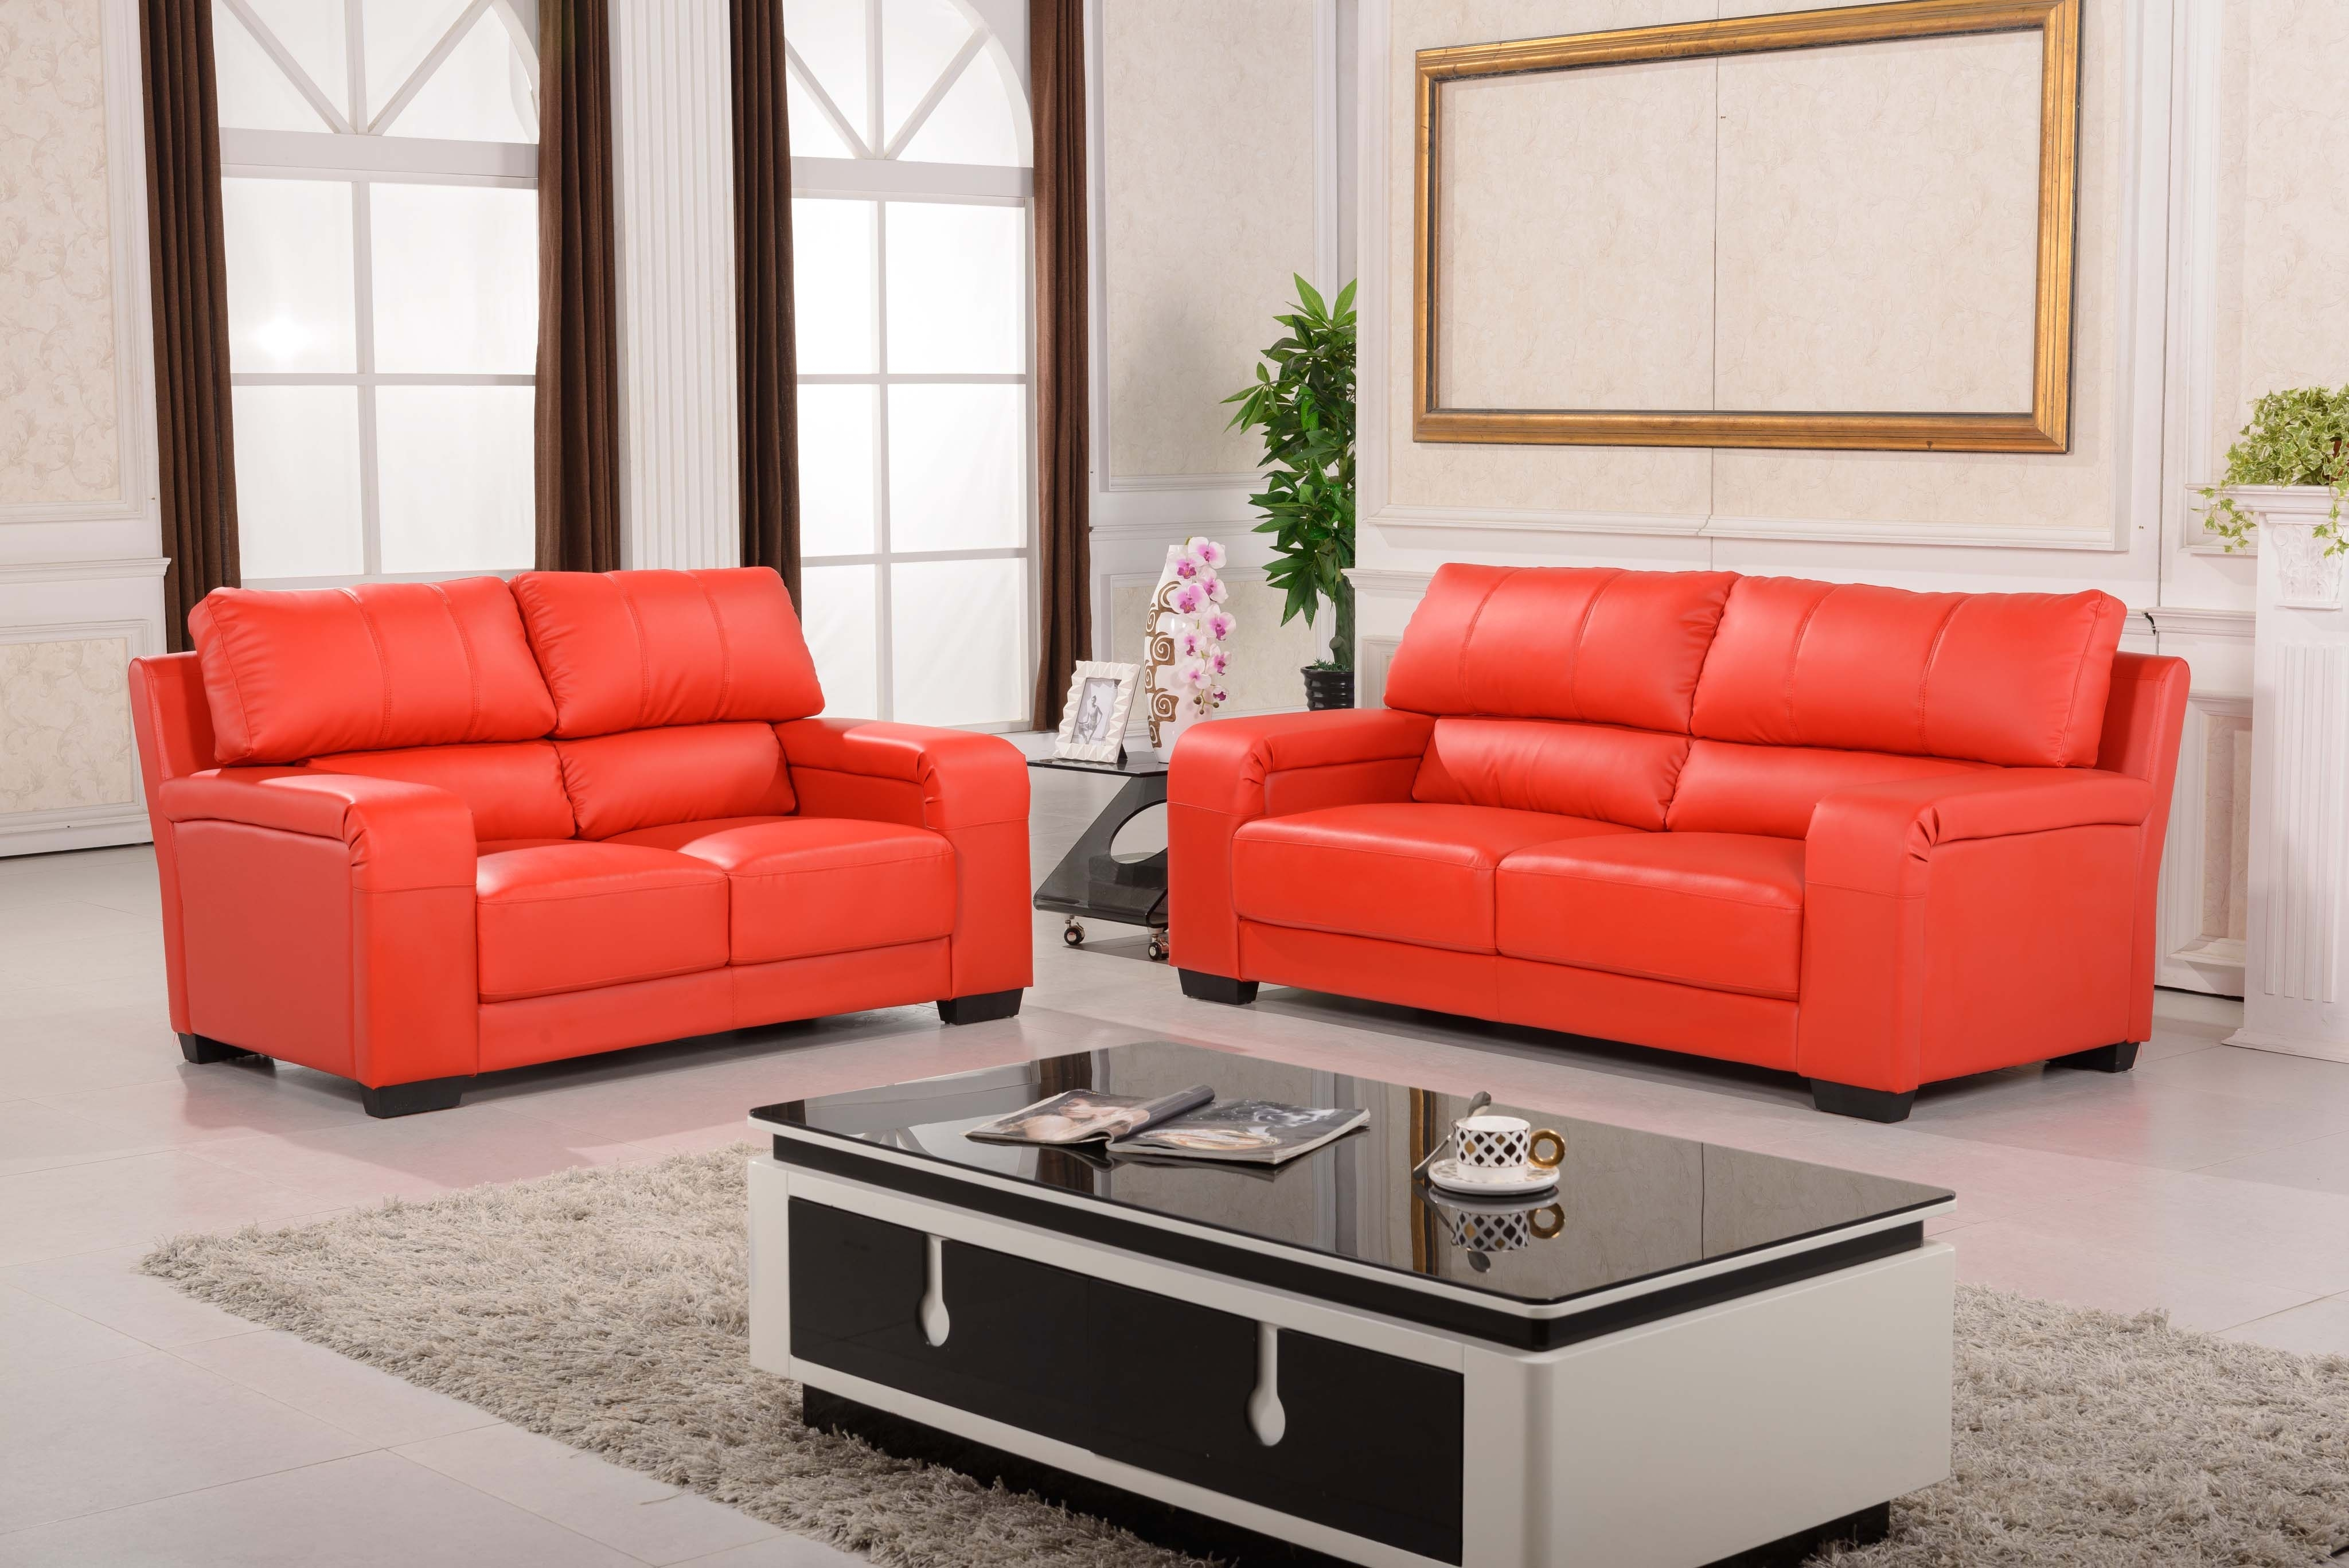 Leather Sofas Orange County Sofa Stores Ashley Furniture Sectional With Regard To Orange County Ca Sectional Sofas (View 7 of 10)